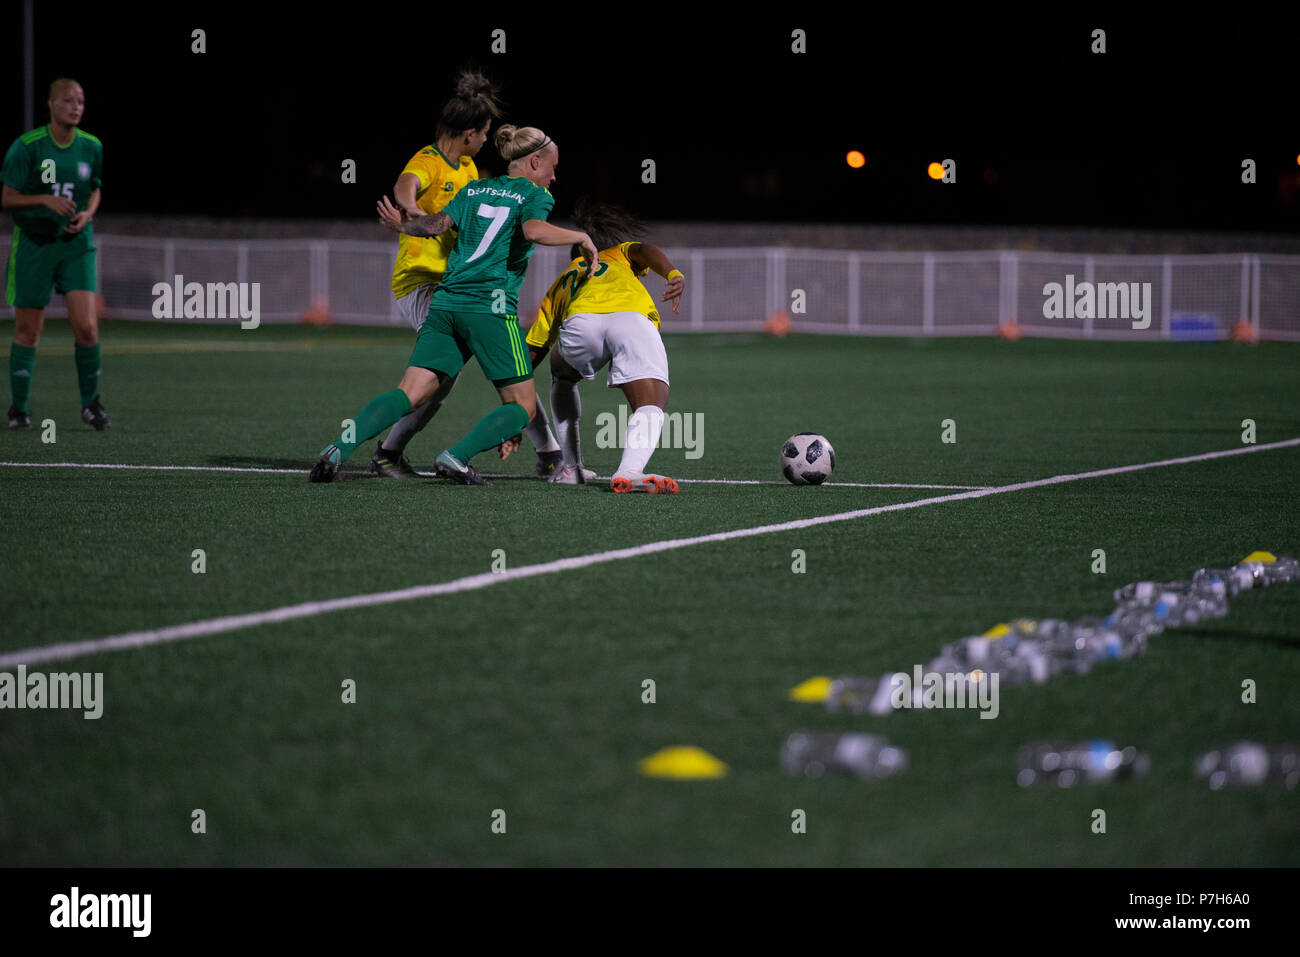 FORT BLISS, Texas - German and Brazilian players battle for ball possession along the edge of the field during the final official match of the 2018 Conseil International du Sport Militaire (CISM) World Military Women's Football Championship. International military teams squared off to eventually crown the best women soccer players among the international  militaries participating. U.S. Navy photo by Mass Communication Specialist 3rd Class Camille Miller (Released) - Stock Image